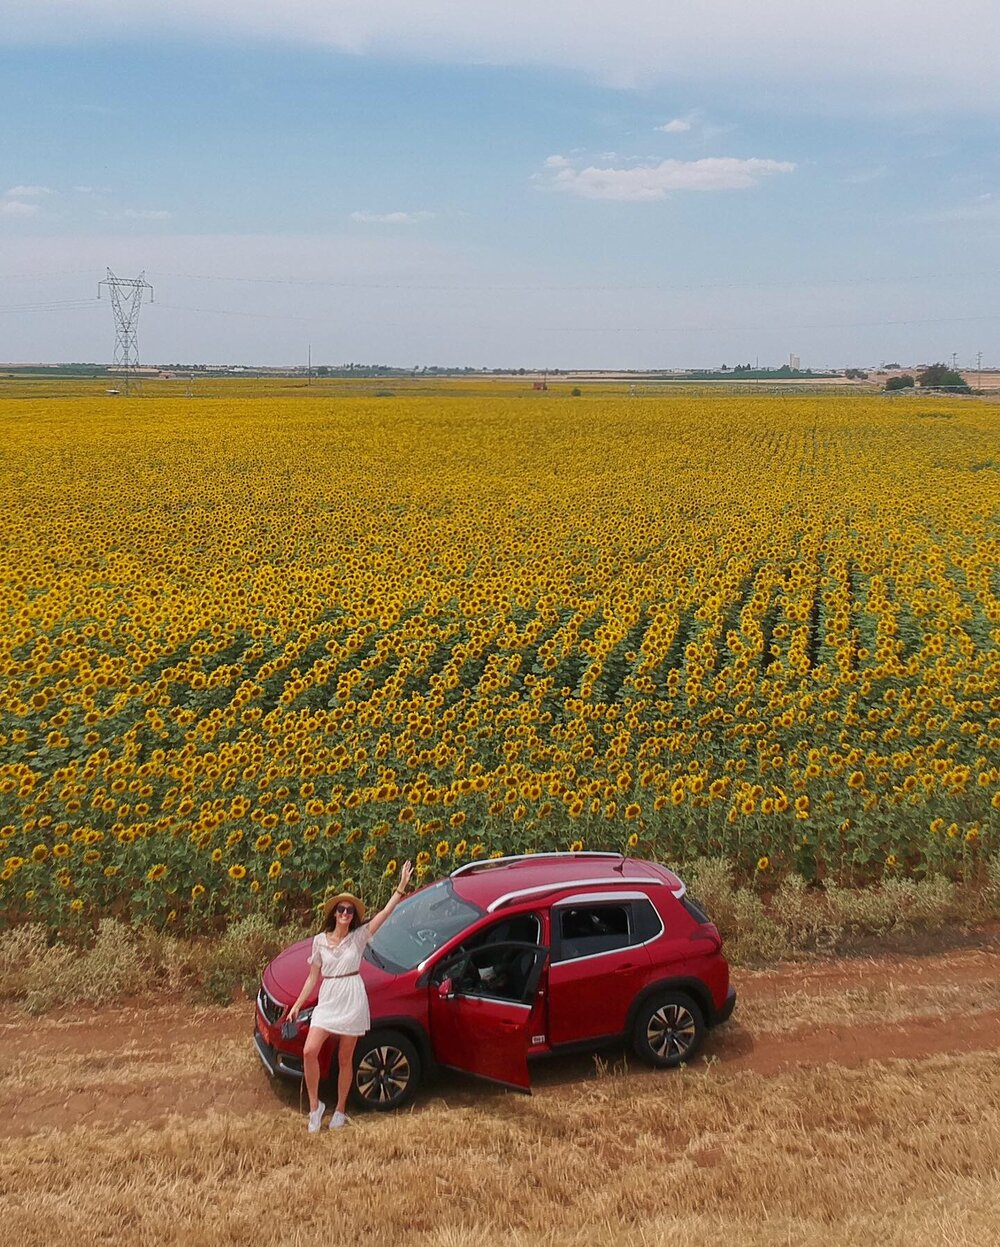 We Drove Past Fields of Sunflowers on our Summer Road Trip Through Portugal.  Click here to read the full itinerary.